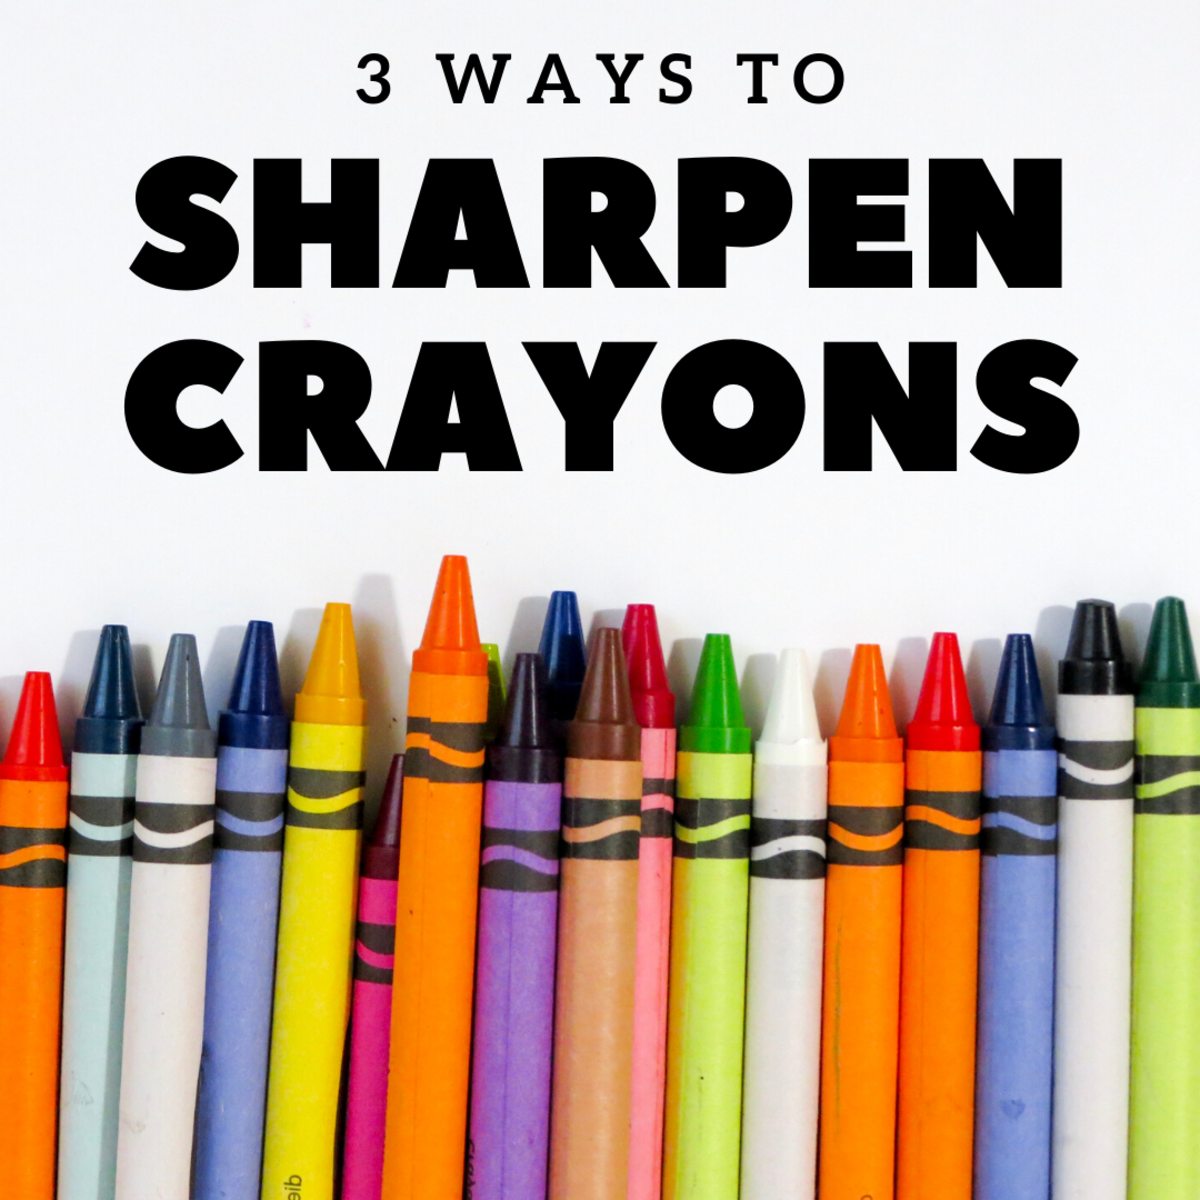 How to Sharpen Crayons (3 Easy Ways)